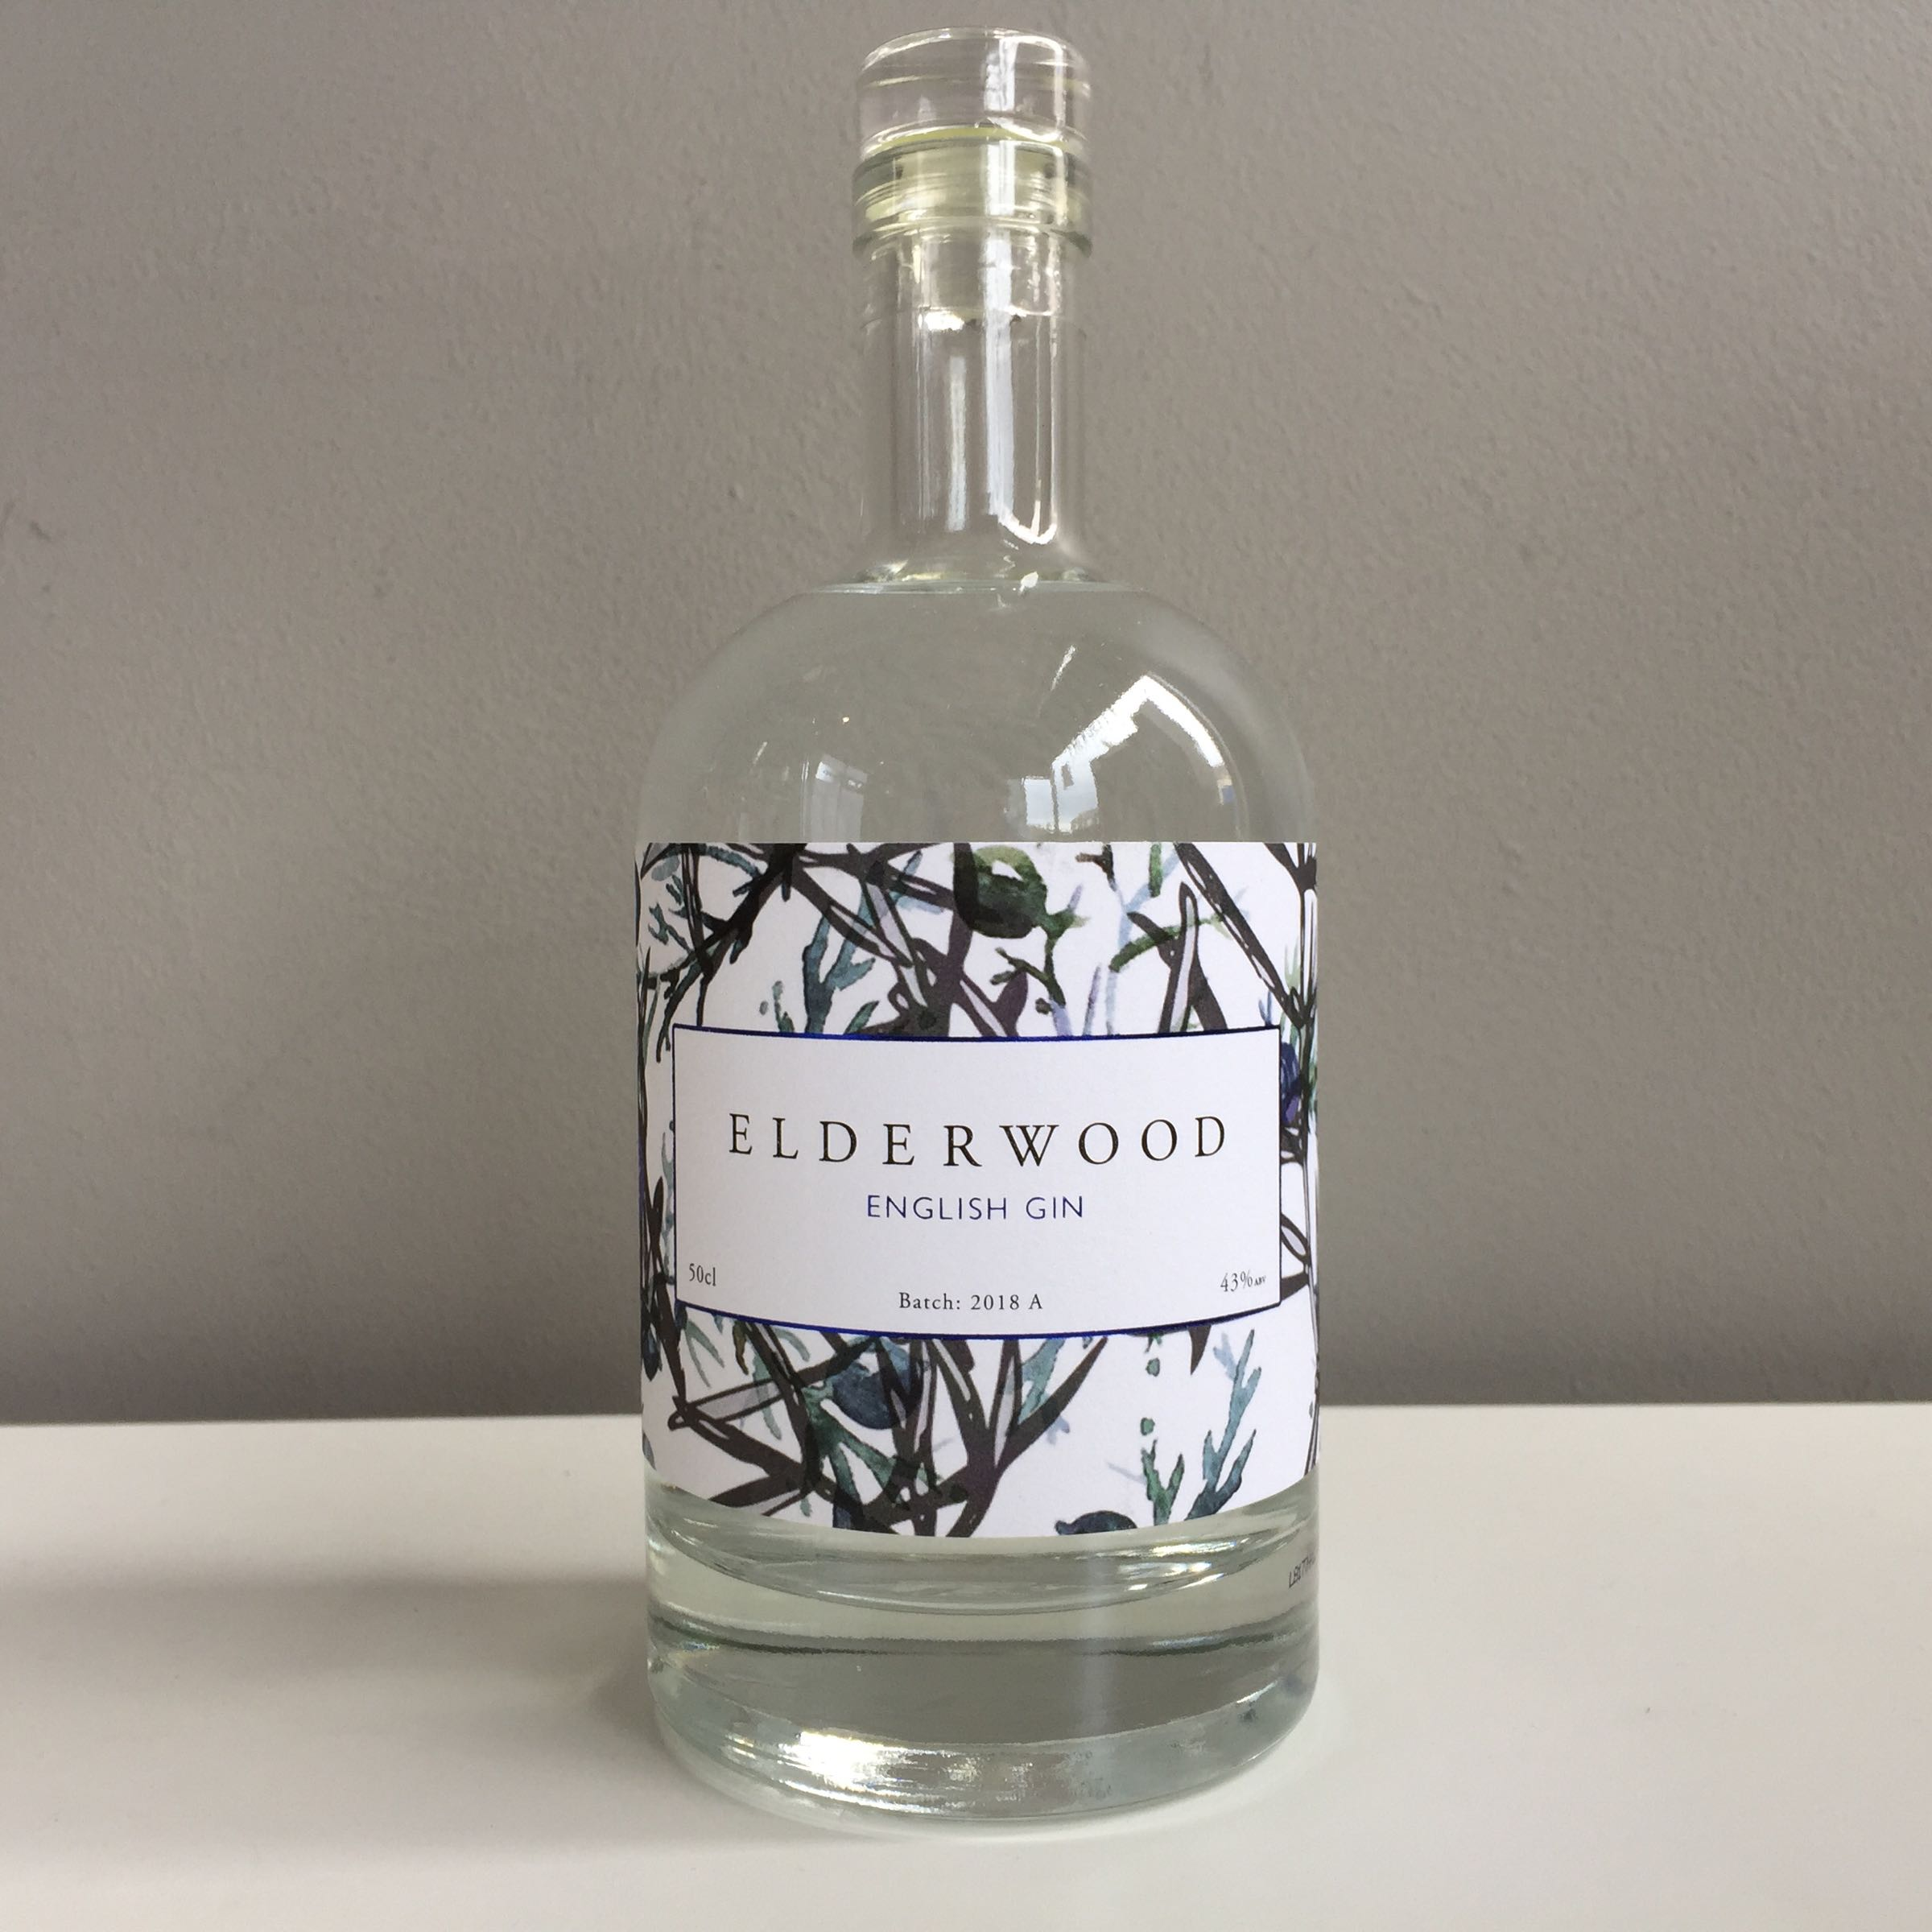 Elderwood English Dry Gin 50cl 43% ABV